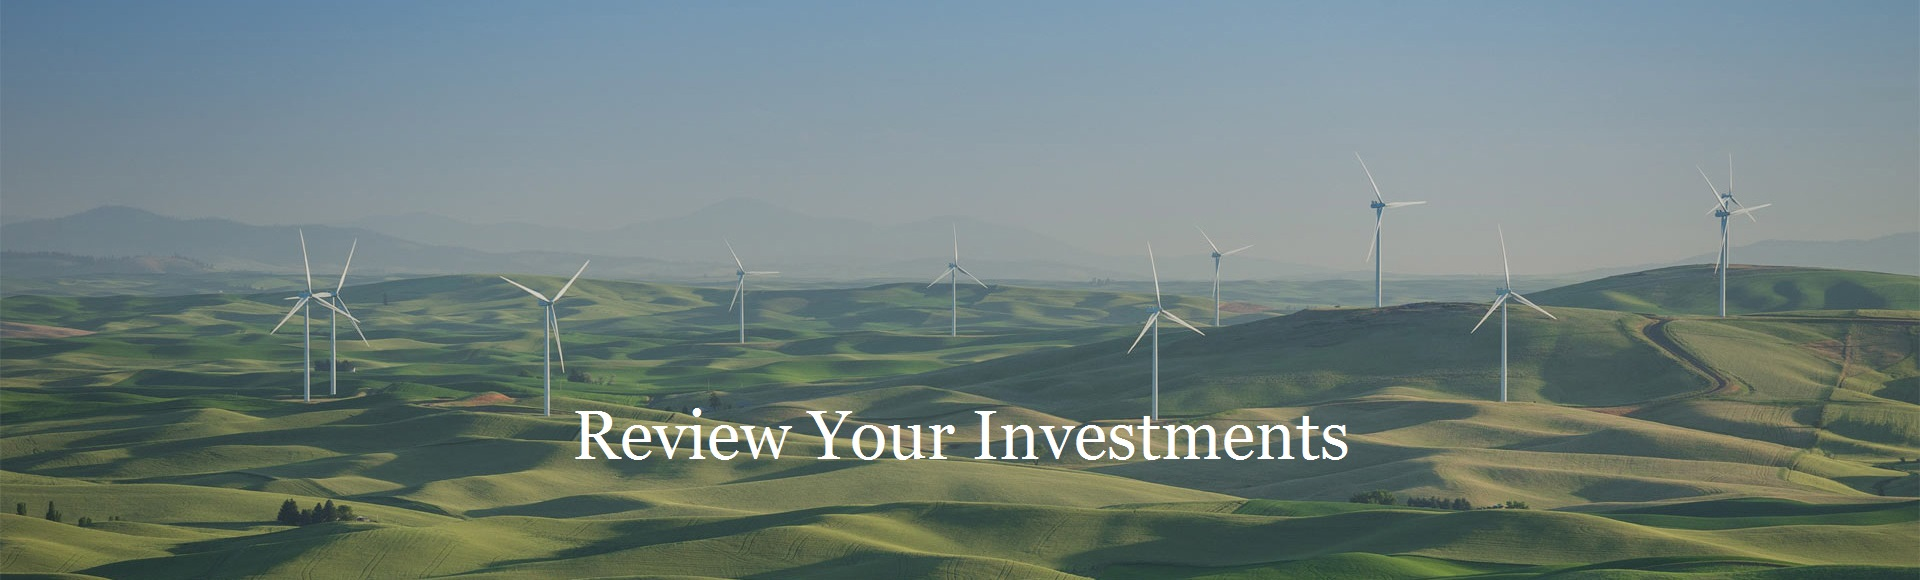 Ethical_investment_review